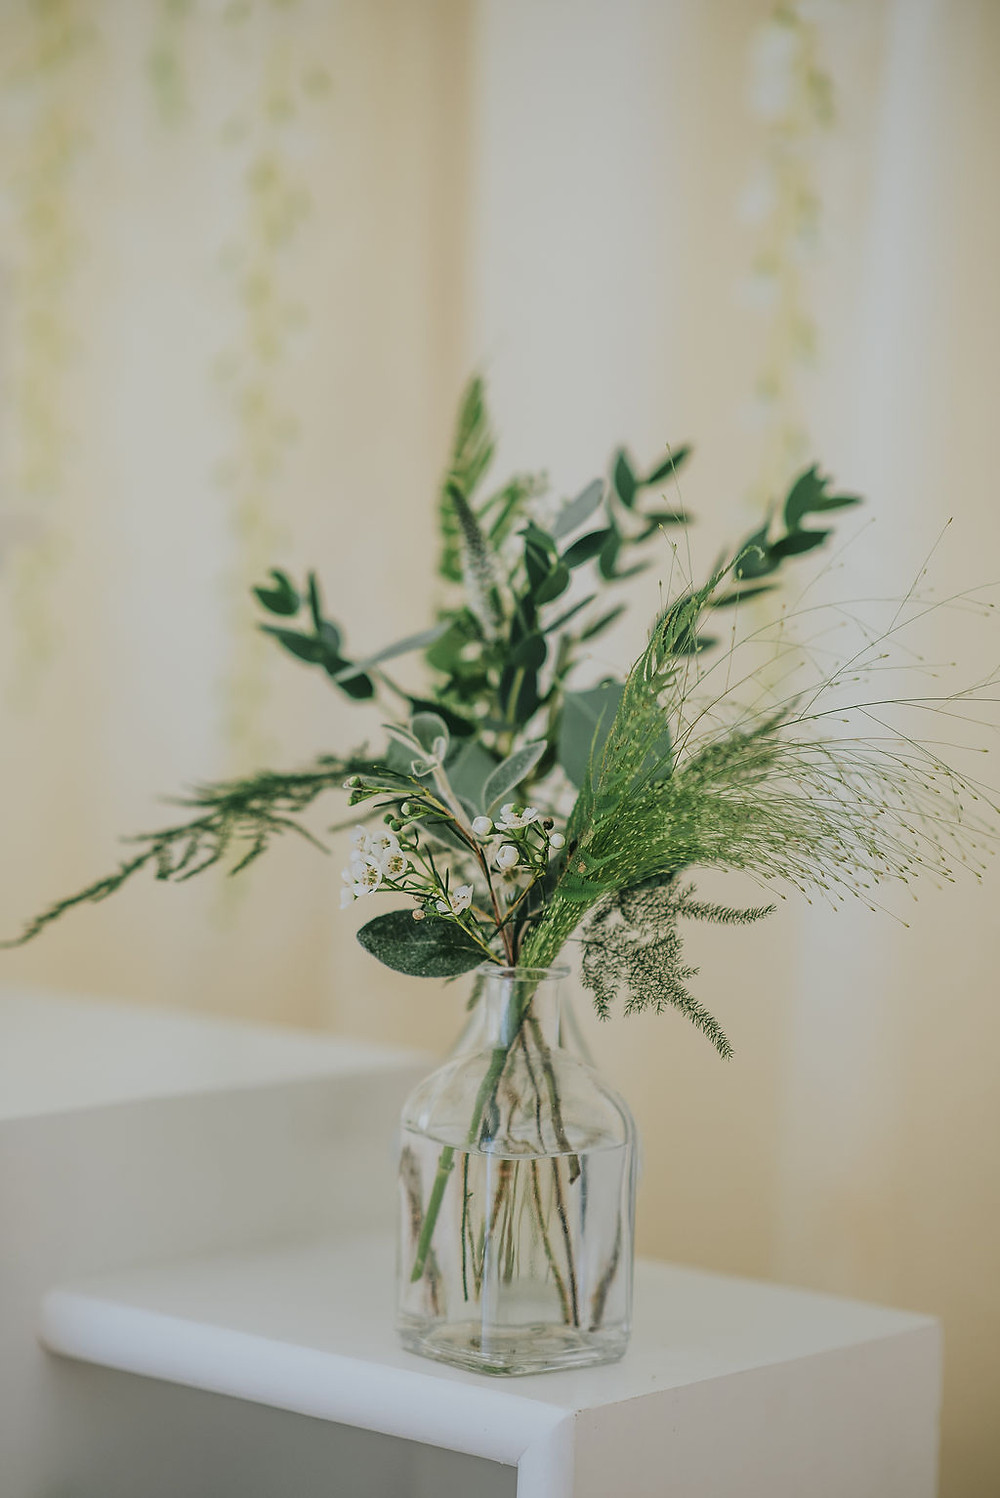 Bud Vases with Greenery and Wax Flower